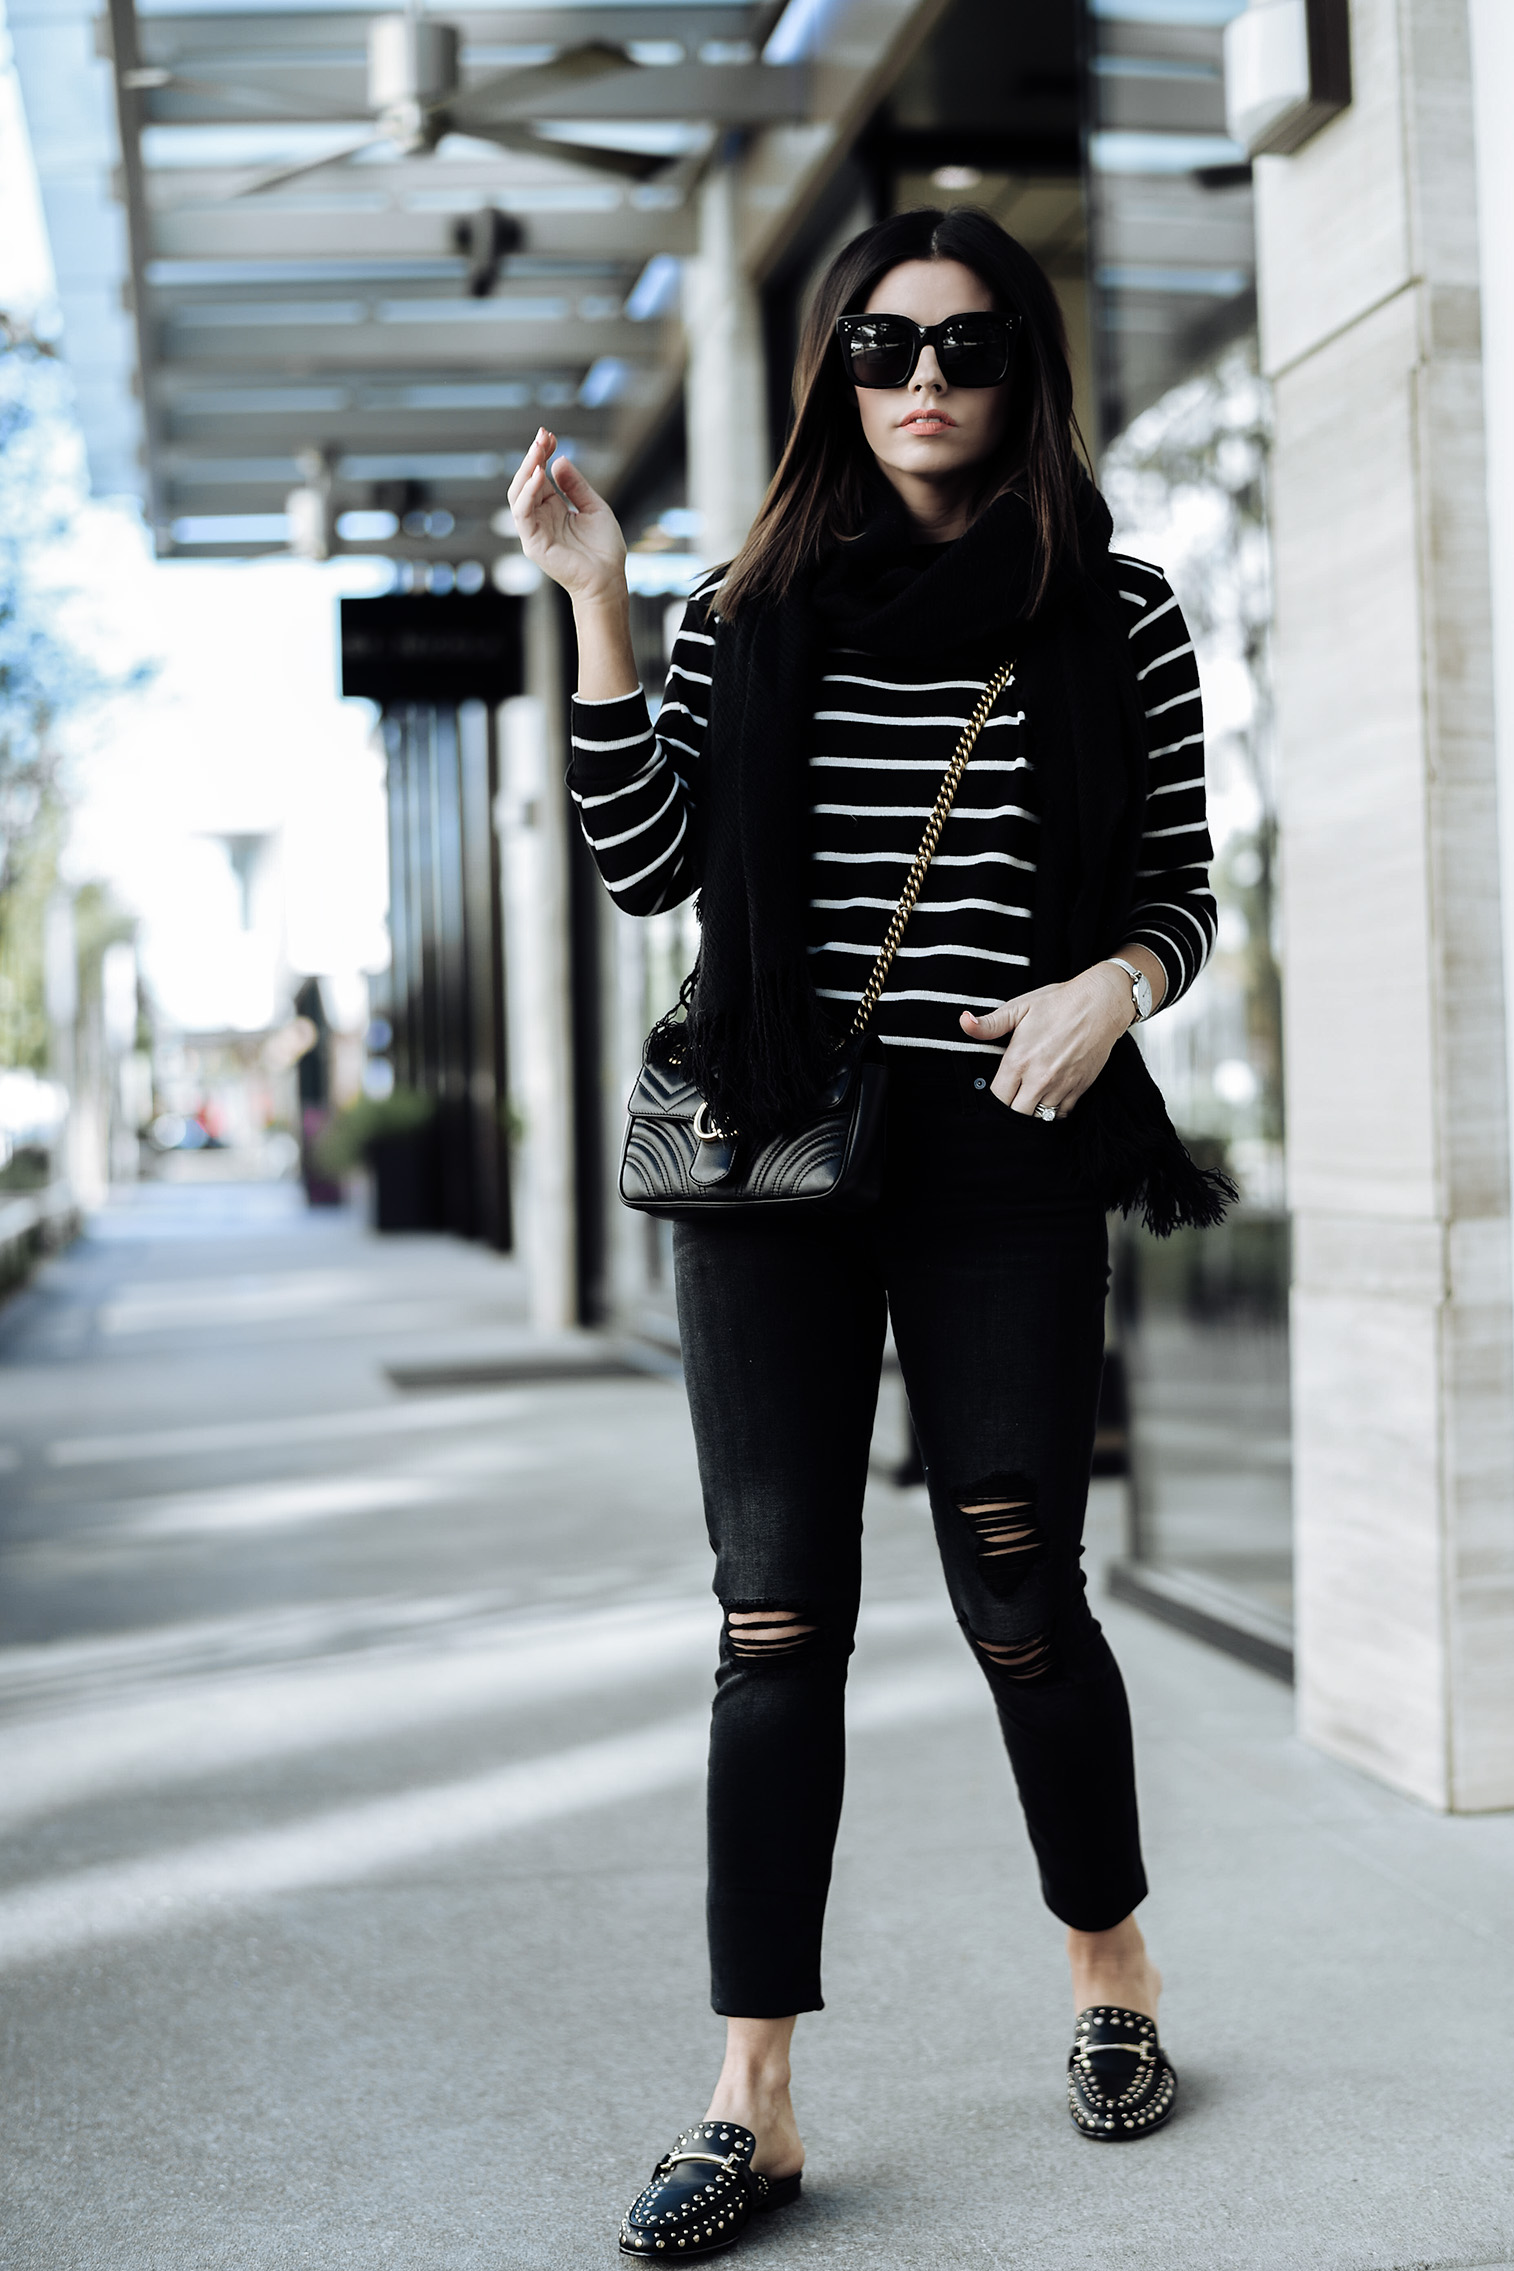 Flats | 7 For All Mankind Ankle Skinny Jeans | Striped sweater| Fringe scarf | Gucci Marmont bag |Tiffany Jais fashion and lifestyle blogger of Flaunt and Center | Houston fashion blogger | Fall denim with Zappos| Streetstyle blog #streetstyle #fashionblog #style # fall style #slides